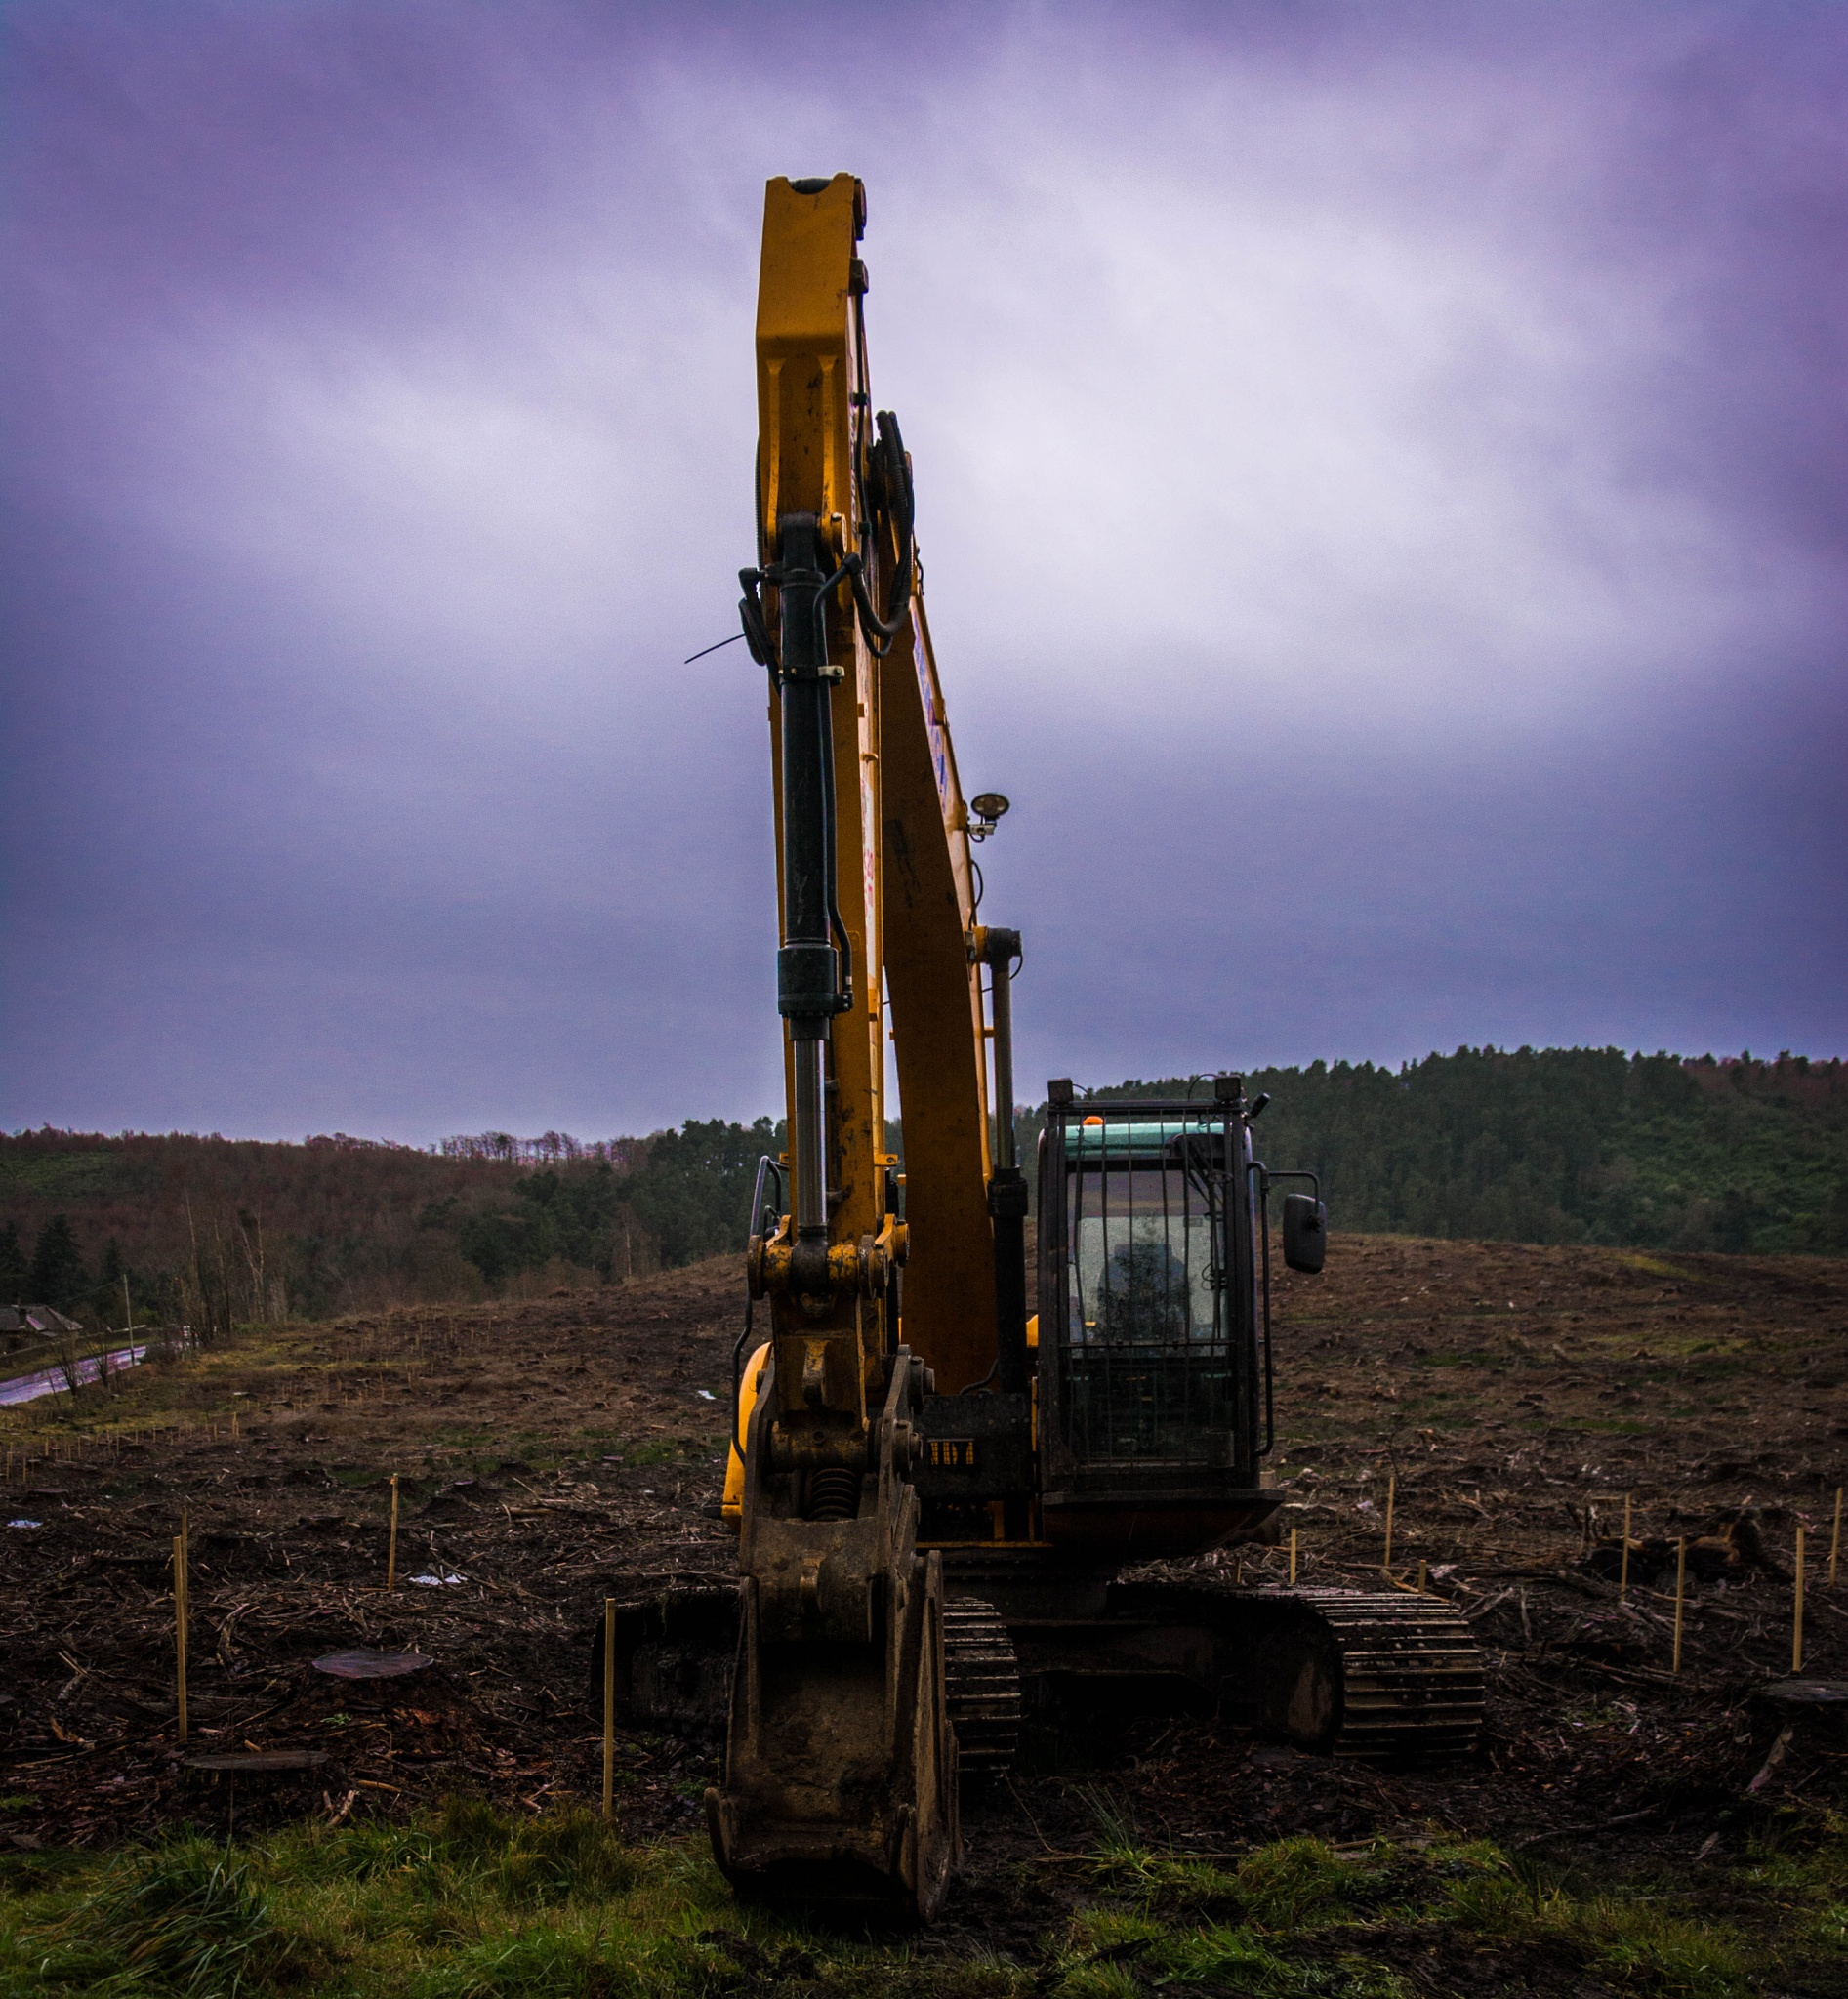 Planting a new forest by Robert Nixon